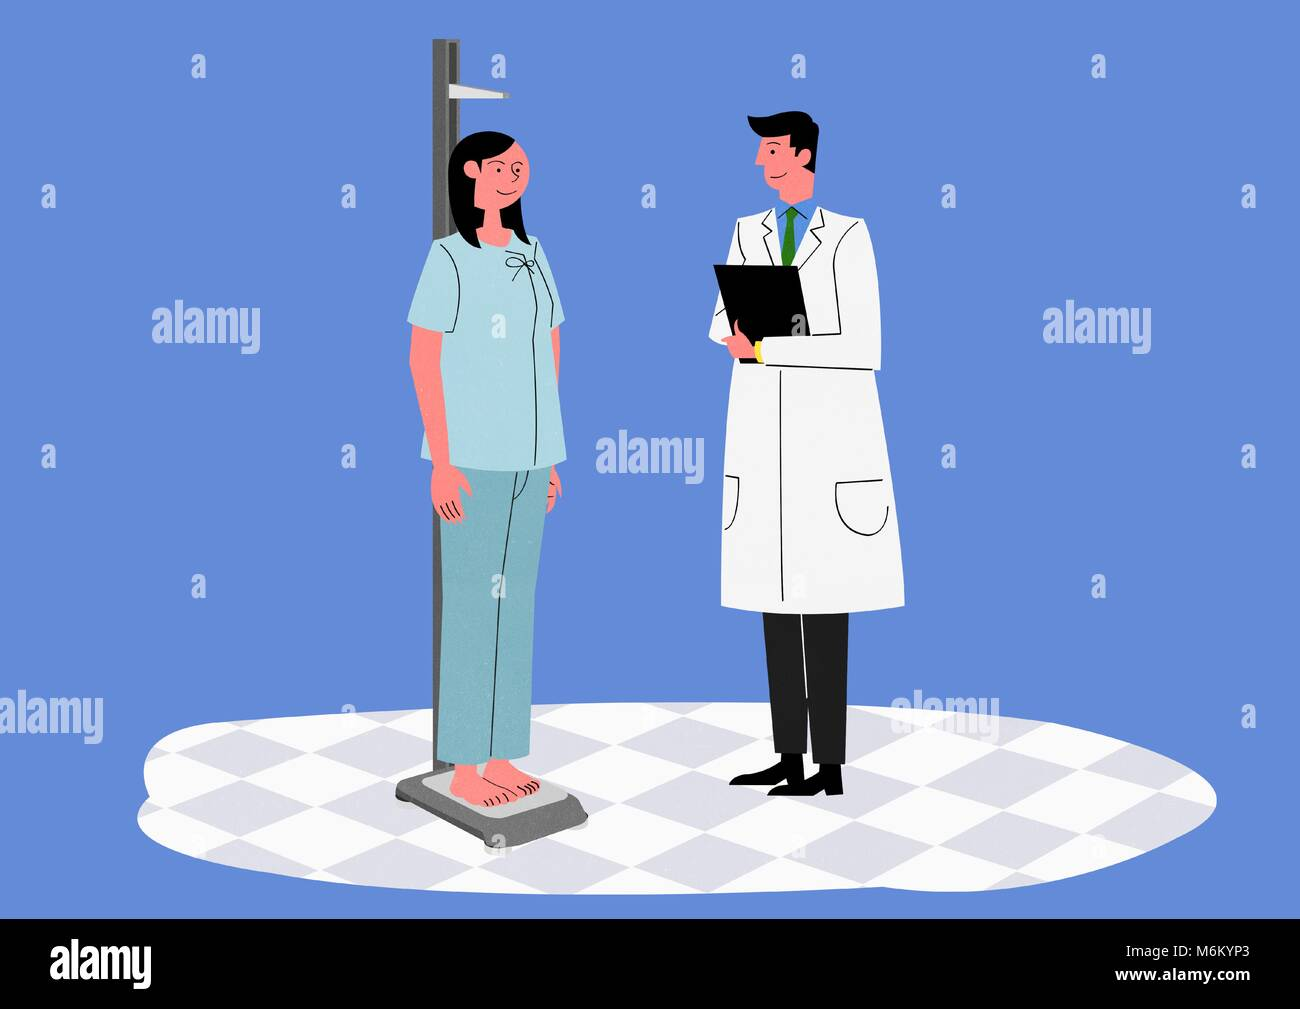 Illustration for a full medical examination, have regular checkups for your health. 017 - Stock Image